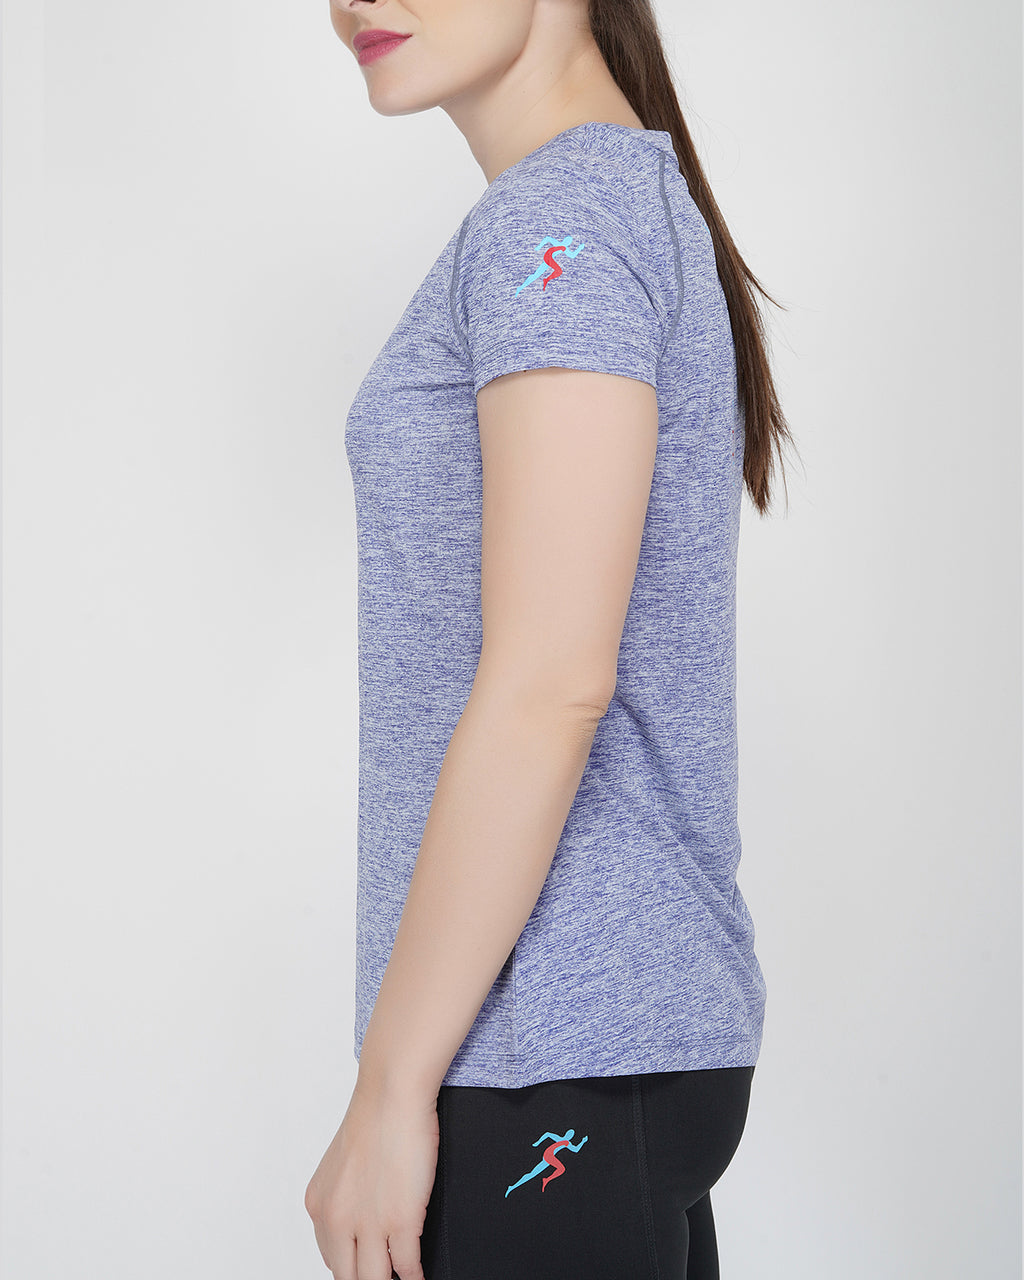 Move Raglan Gym T-shirt For Women - Blue Melange